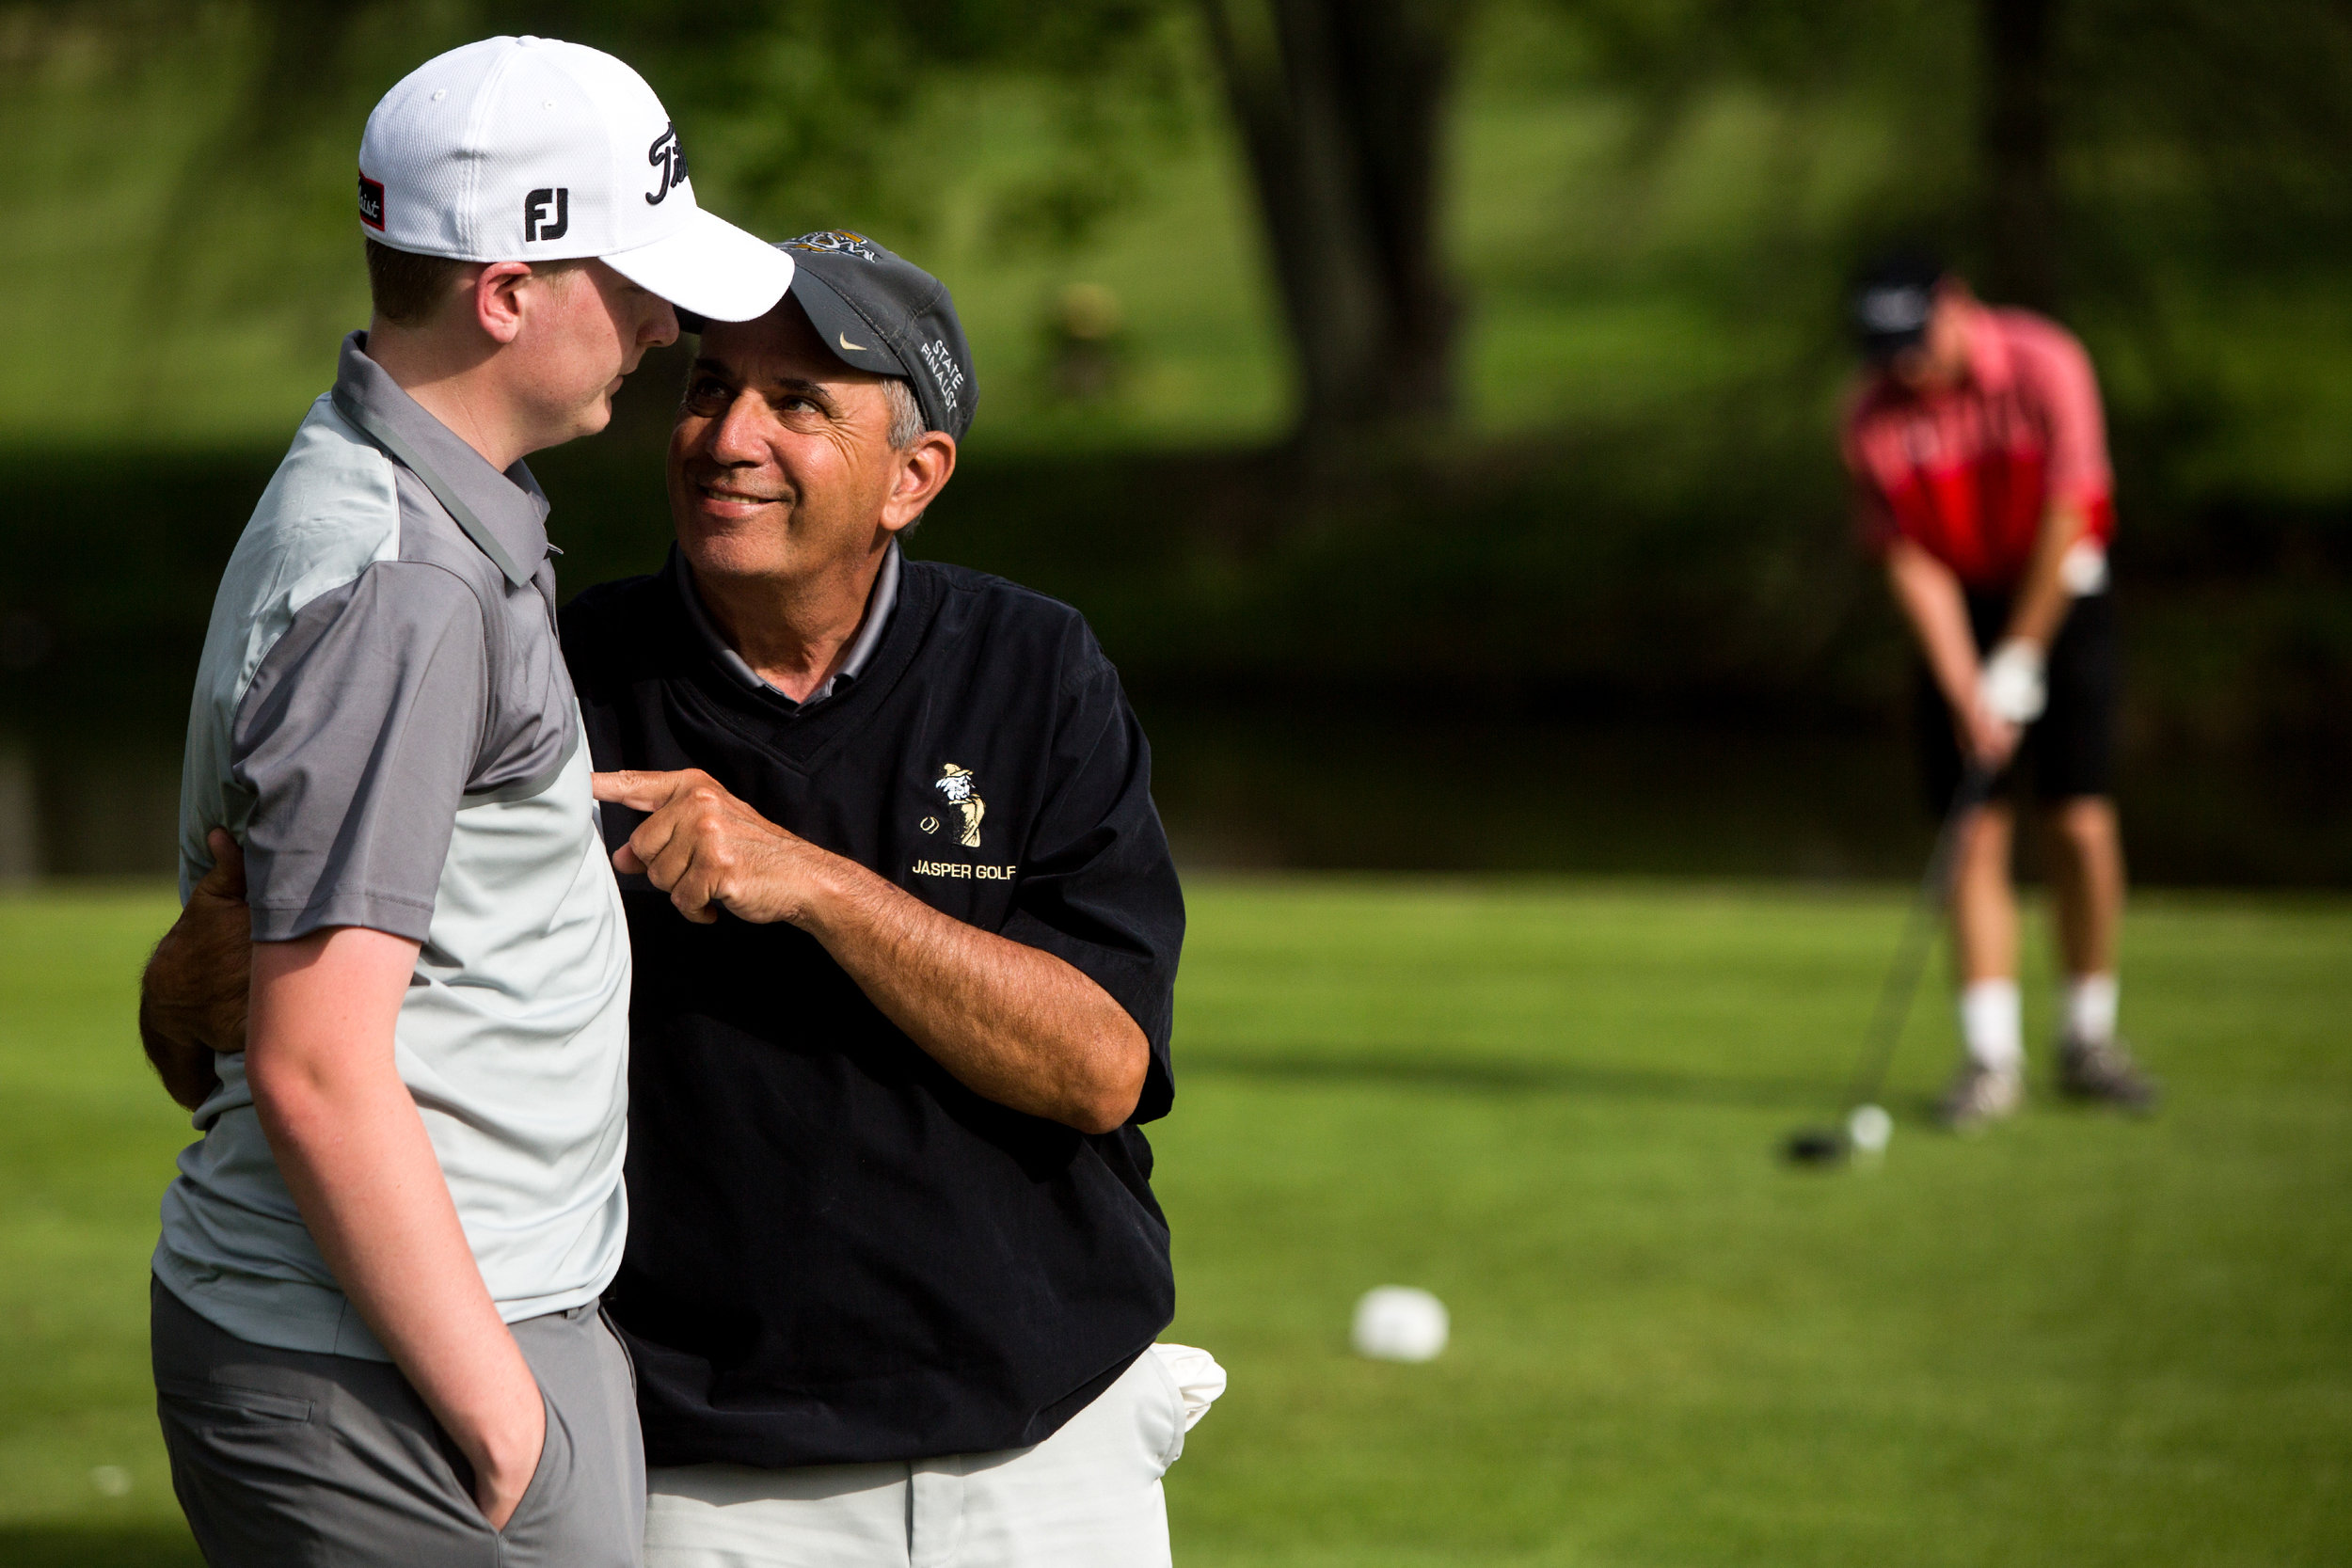 Jasper boys golf coach Steve Milligan, who talked to Evan Wolfe before he teed off during a match last week, is reveling in his return to the course this season. Milligan stepped away from coaching last spring while undergoing treatment for a form of brain cancer that also inhibited his ability to walk. With the cancer in remission and his energy restored, Milligan is back for his 12th season coaching the boys program.